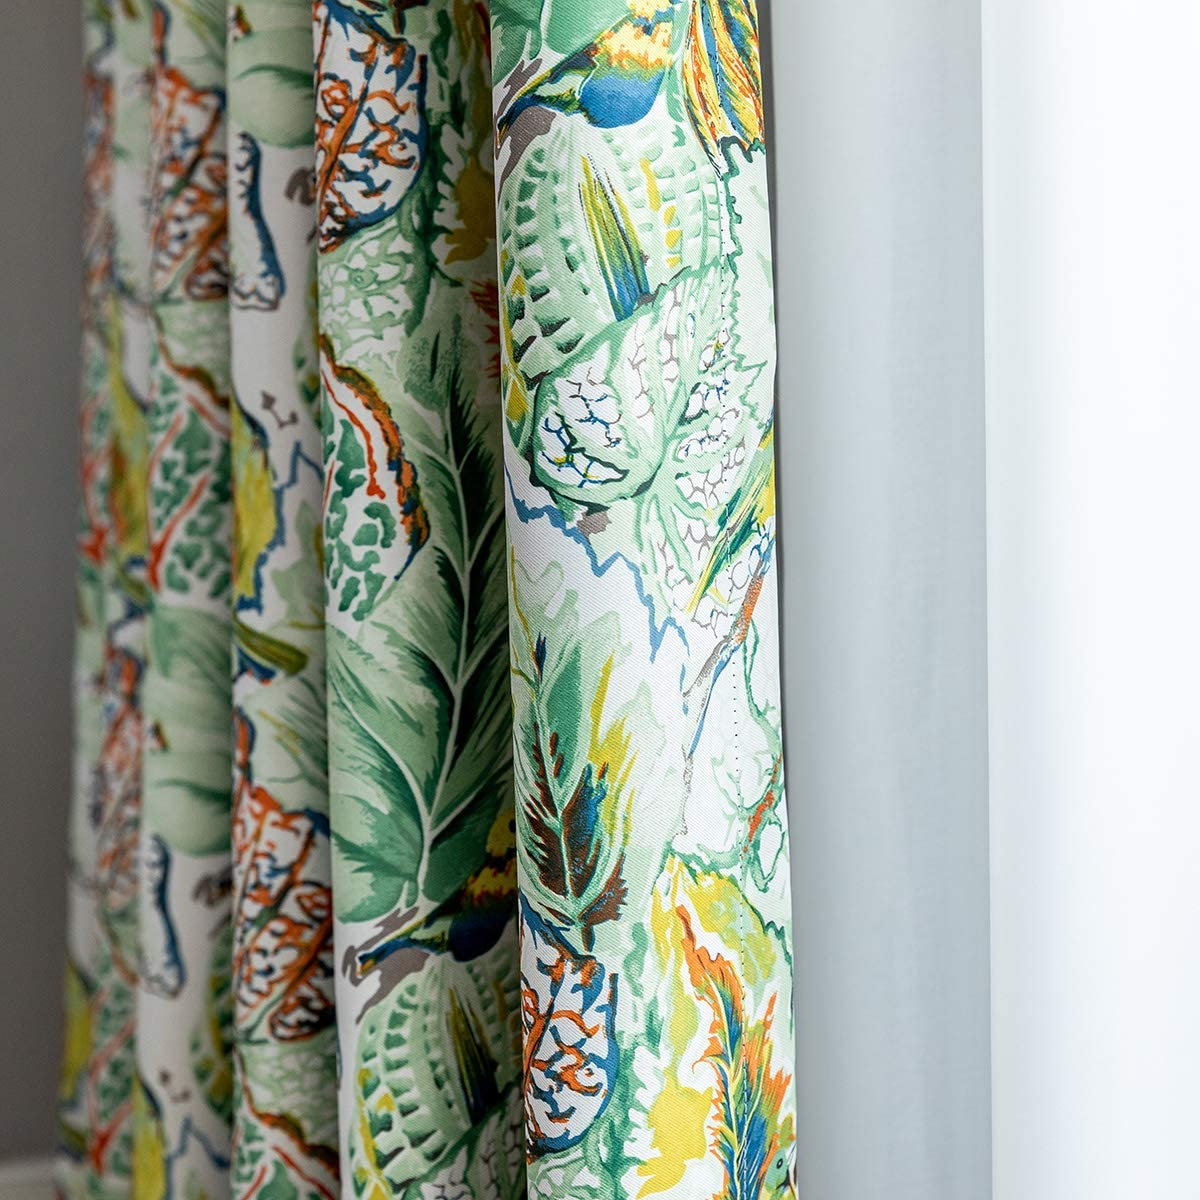 VOGOL Watercolor Living Room Curtains, Colorful Birds and Tropical Leaf Print Thermal Insulated Grommet Blackout Curtains for Dining Room, 2 Panels, W60XL106